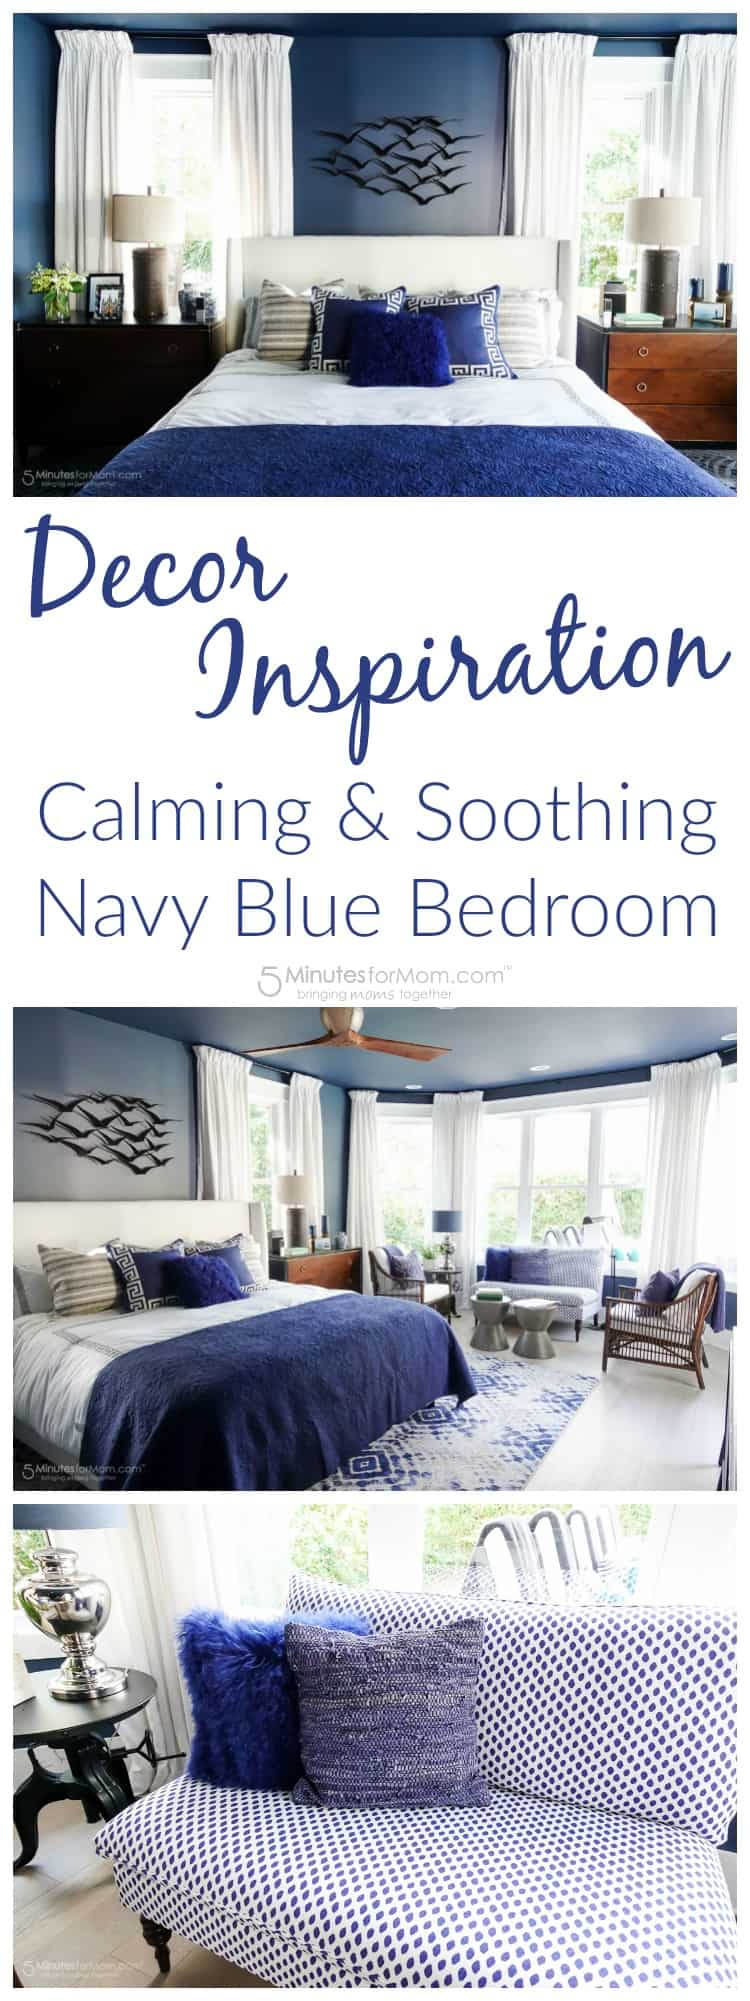 Decor Inspiration - Calming and Soothing Navy Blue Bedroom